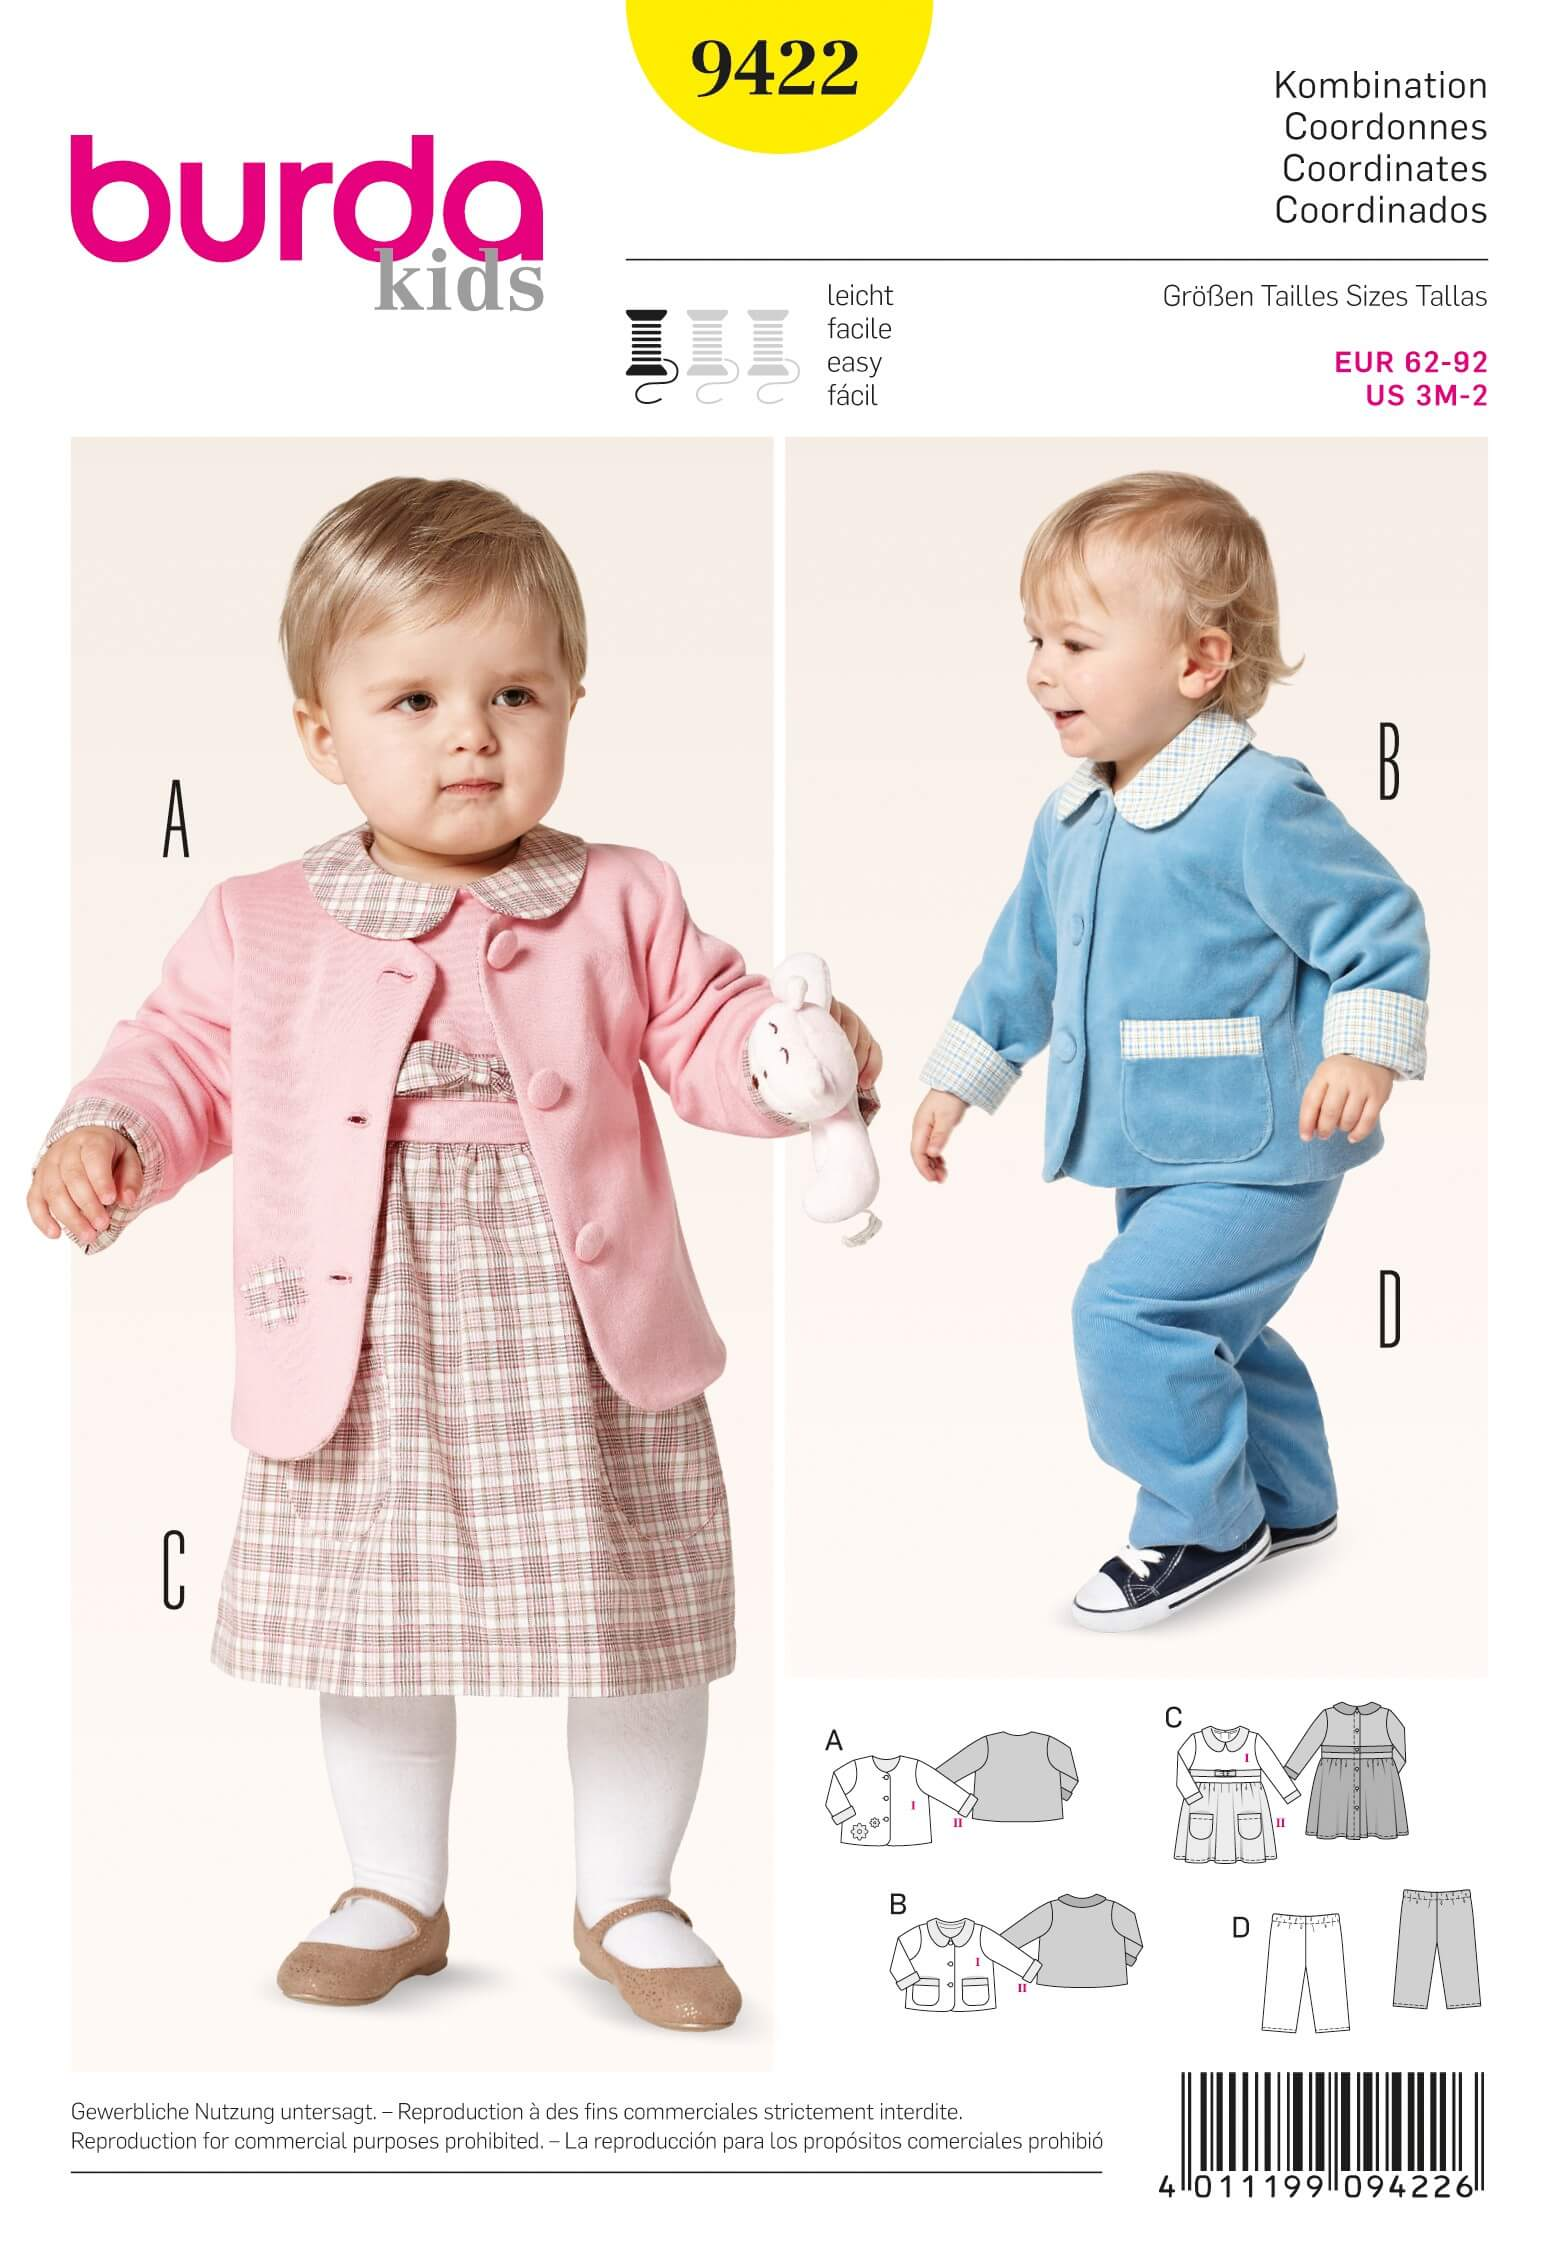 Burda KidsBaby Toddler  Jacket Dress Trousers Fabric Sewing Pattern 9422